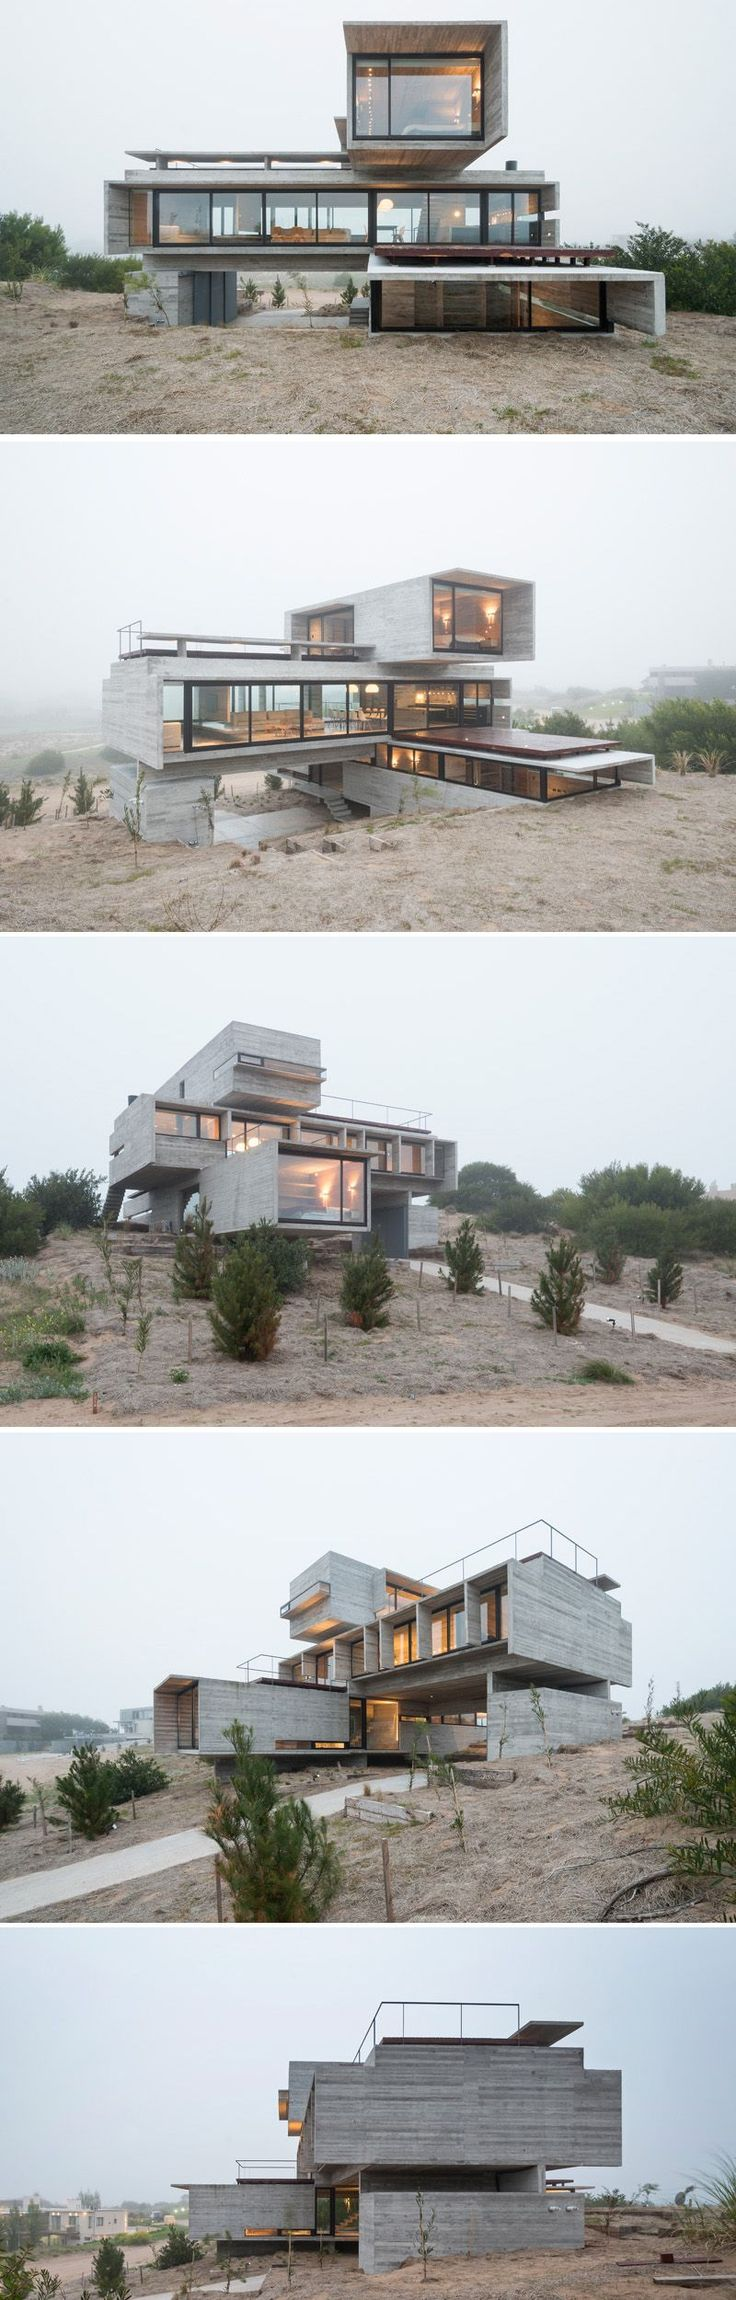 Architect Luciano Kruk designs a house made of three stacked forms of rough unfinished concrete overlooking a golf course in Argentina There are 10 things you should do and 10 you should not do when building with shipping containers. With rising cost of building, more and more people want to do DIY projects. One of the easies ways is to add Shiiping Container Homes to your DIY list.